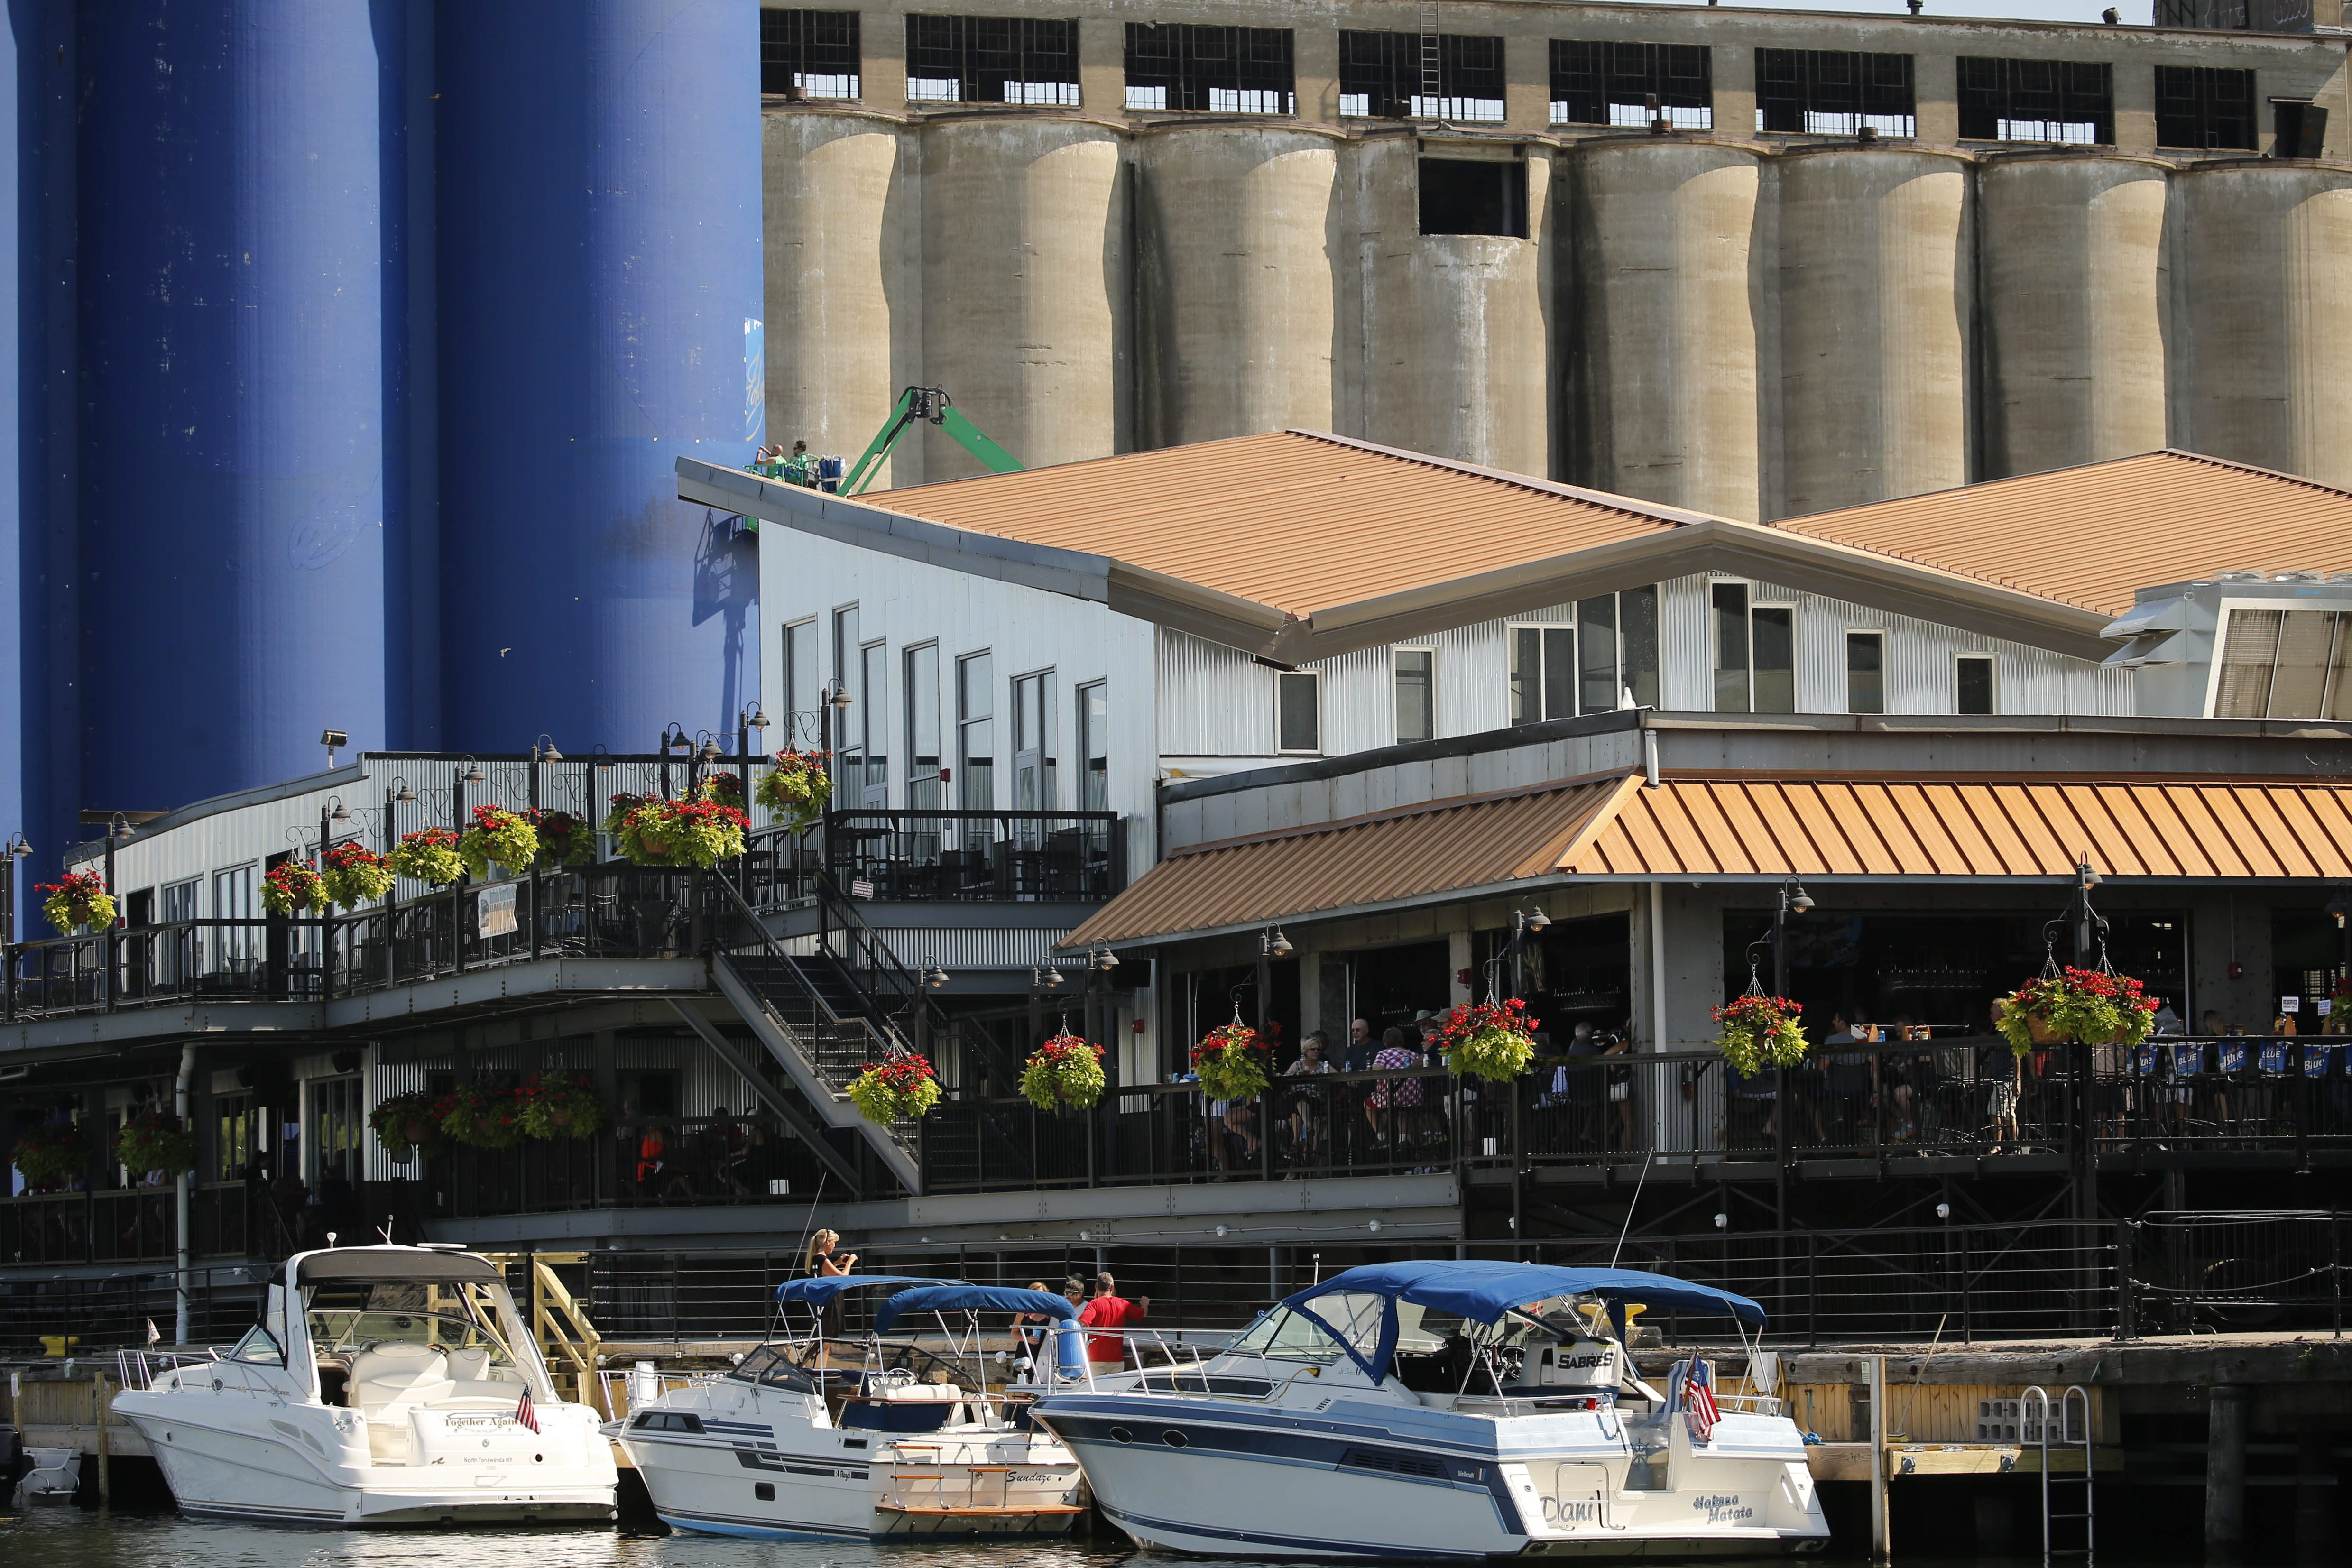 Riverworks is bustling with boat traffic on this June day. (Derek Gee/Buffalo News file photo)